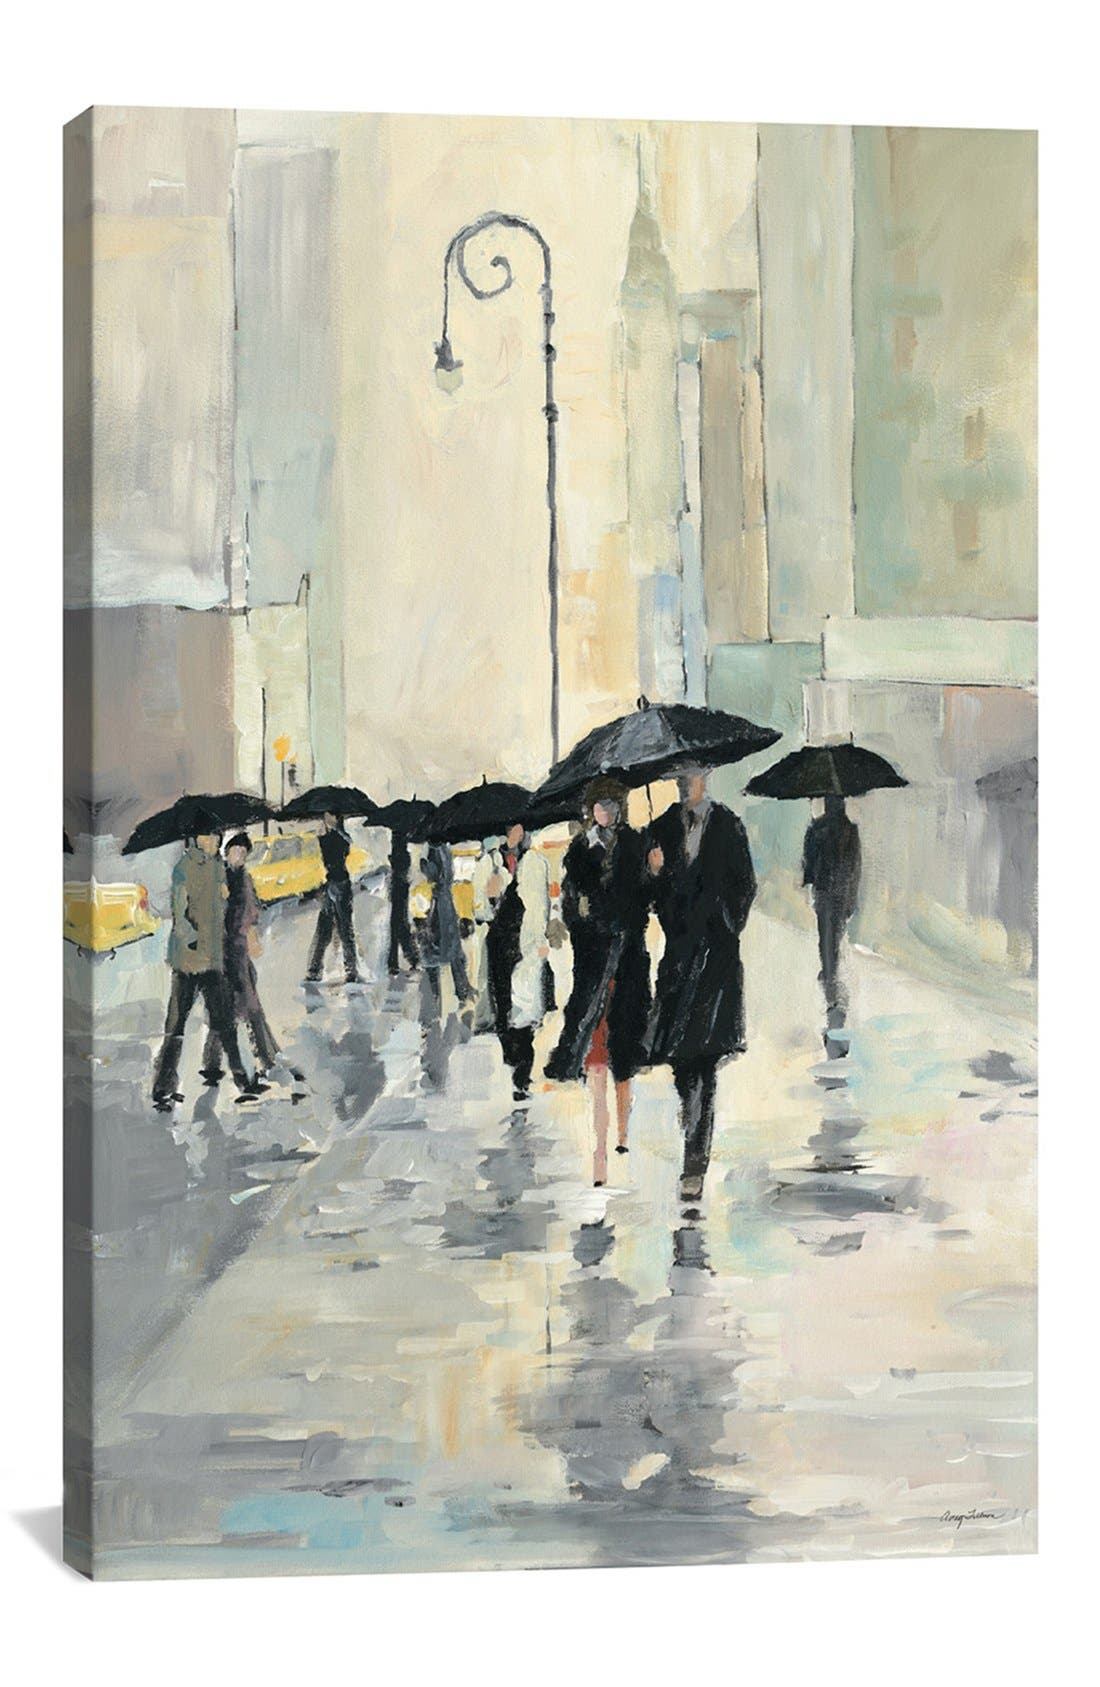 Alternate Image 1 Selected - iCanvas 'City in the Rain - Avery Tillmon' Giclée Print Canvas Art